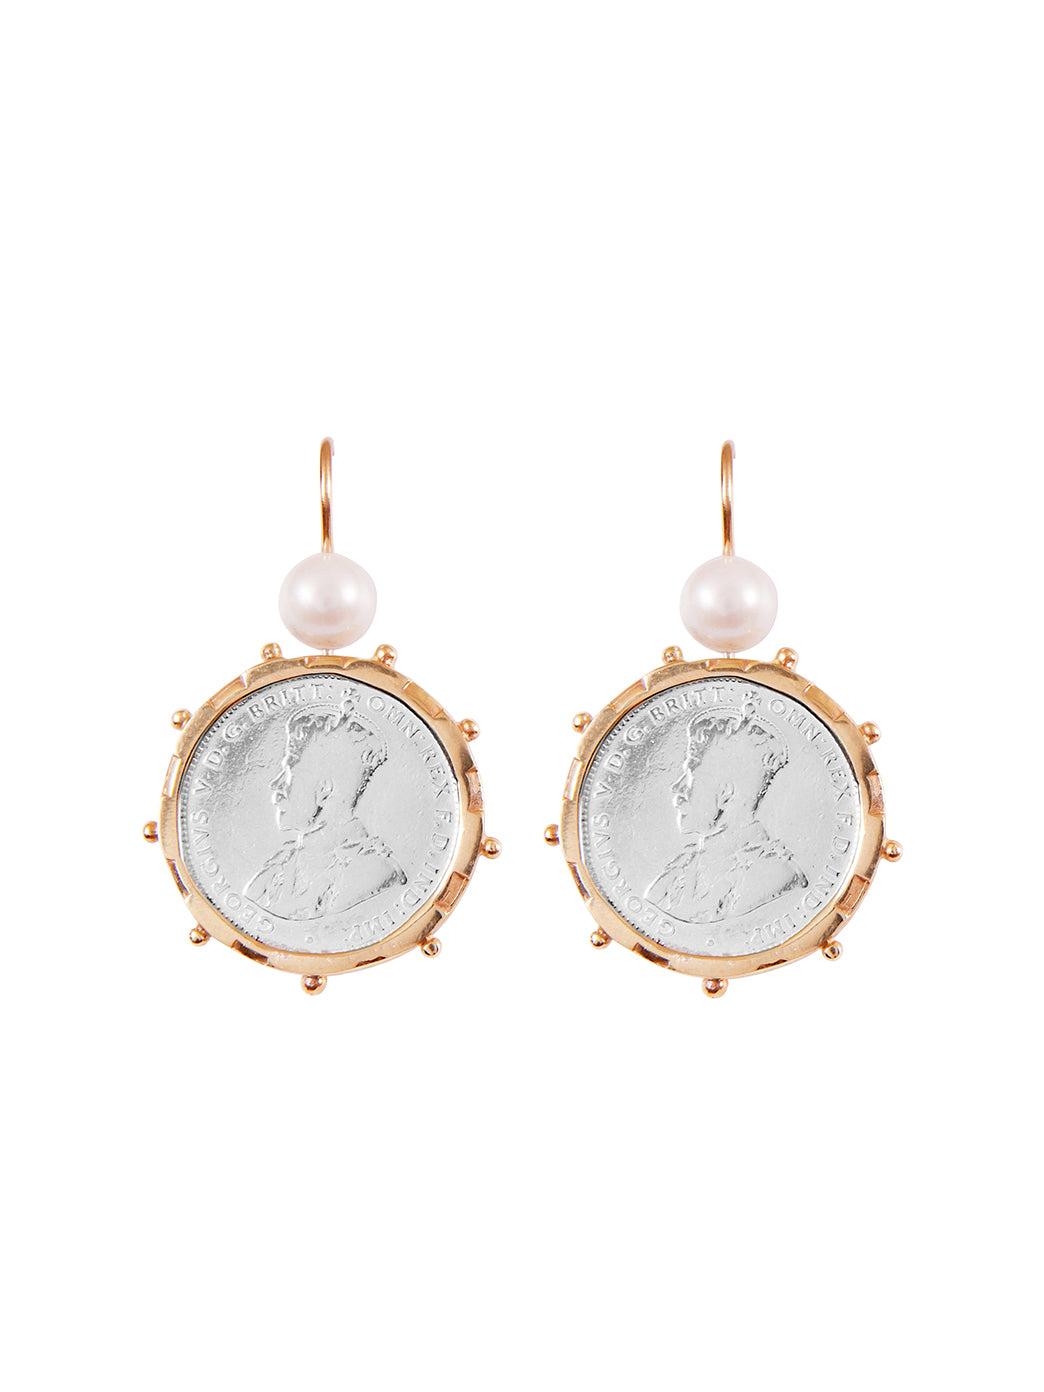 Fiorina Jewellery Gold Encased Shilling Coin Earrings Pearl Highlights